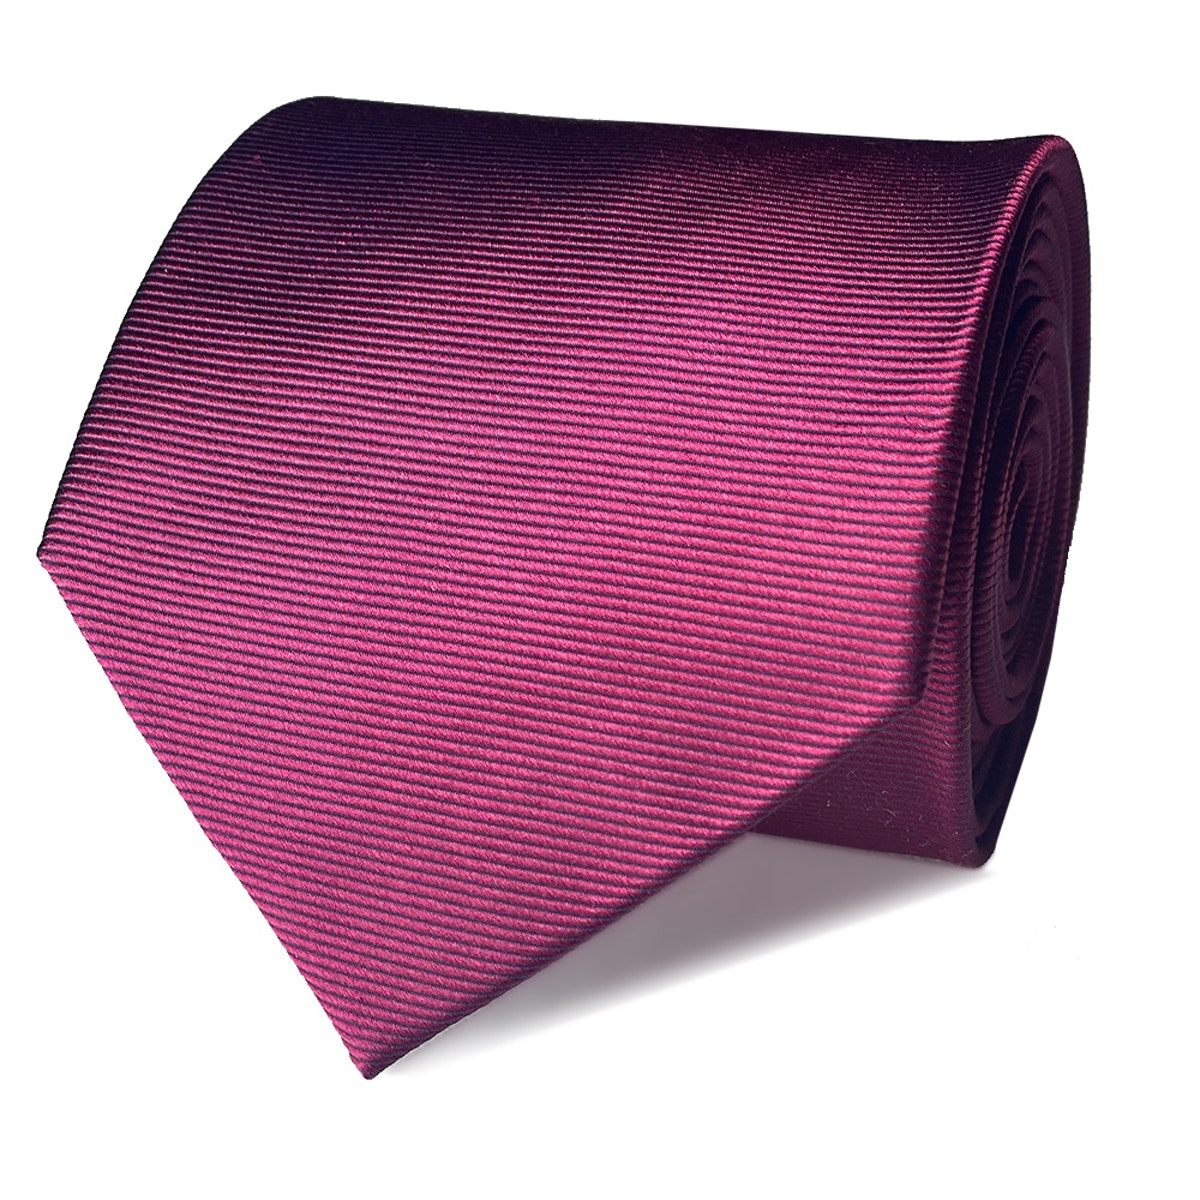 InStitchu Collection The Terzo Maroon Plain Silk Tie